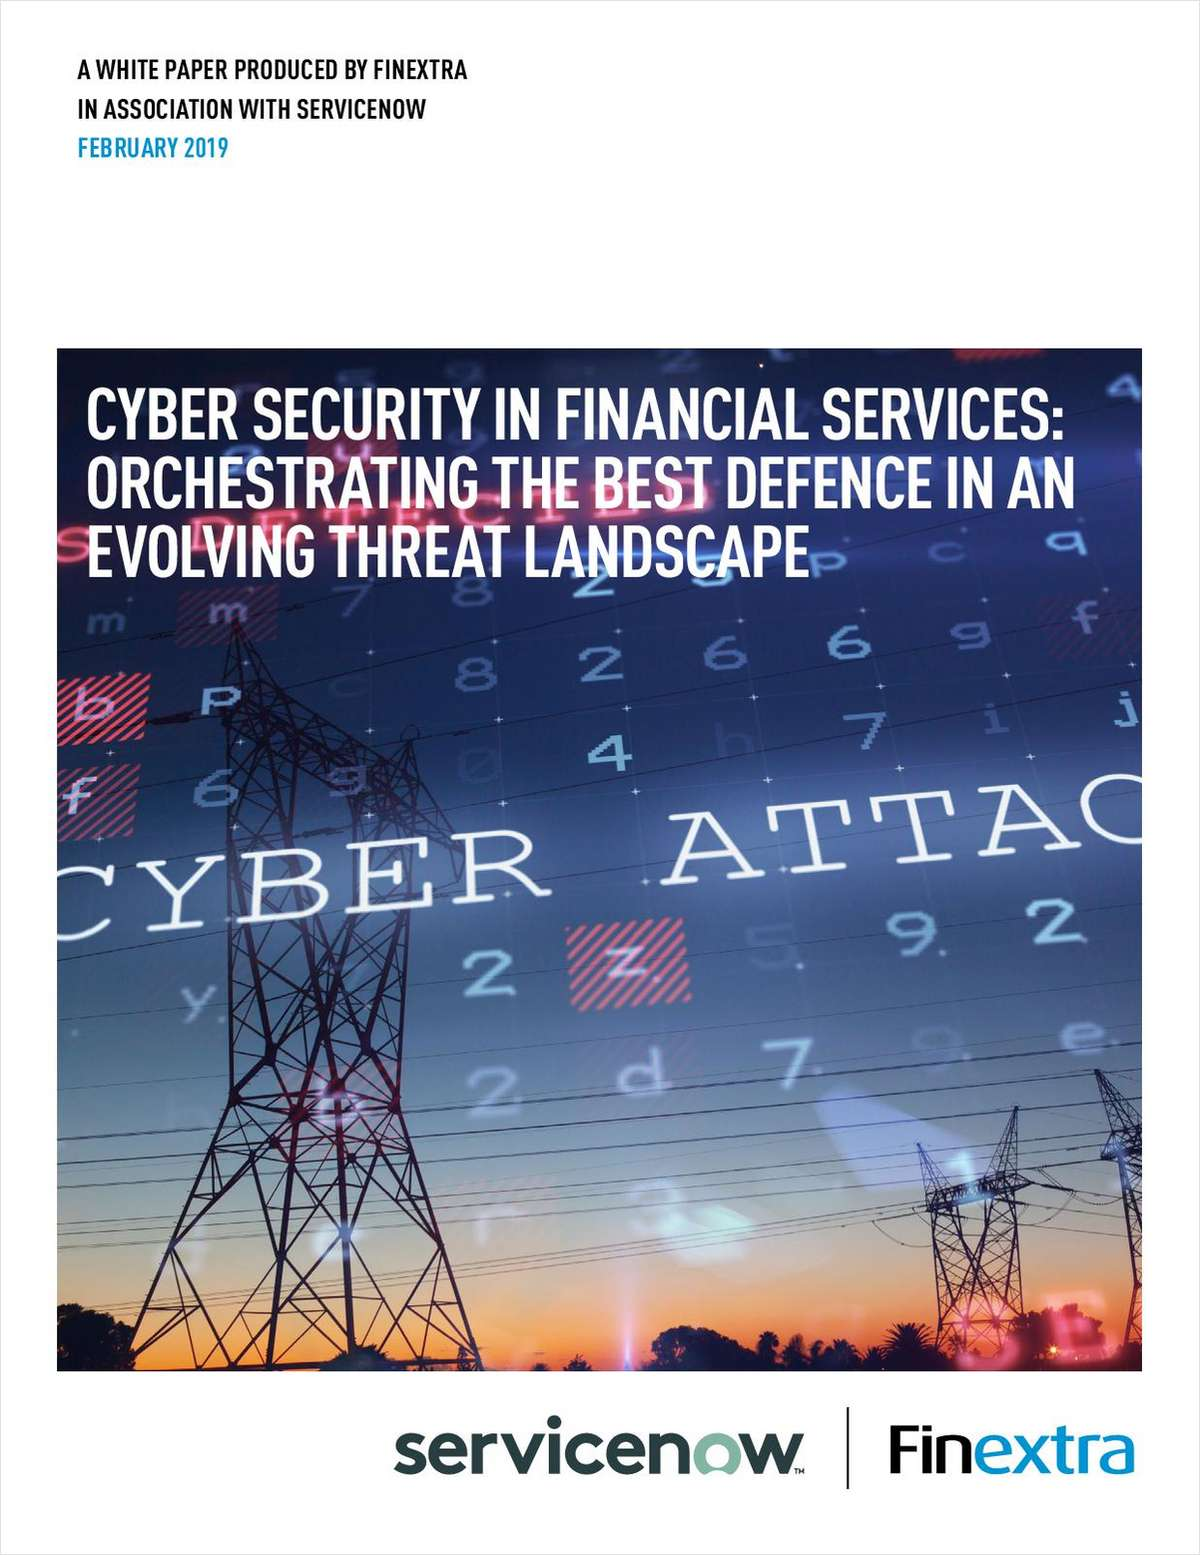 Cyber Security in Financial Services: Orchestrating the Best Defence in an Evolving Threat Landscape